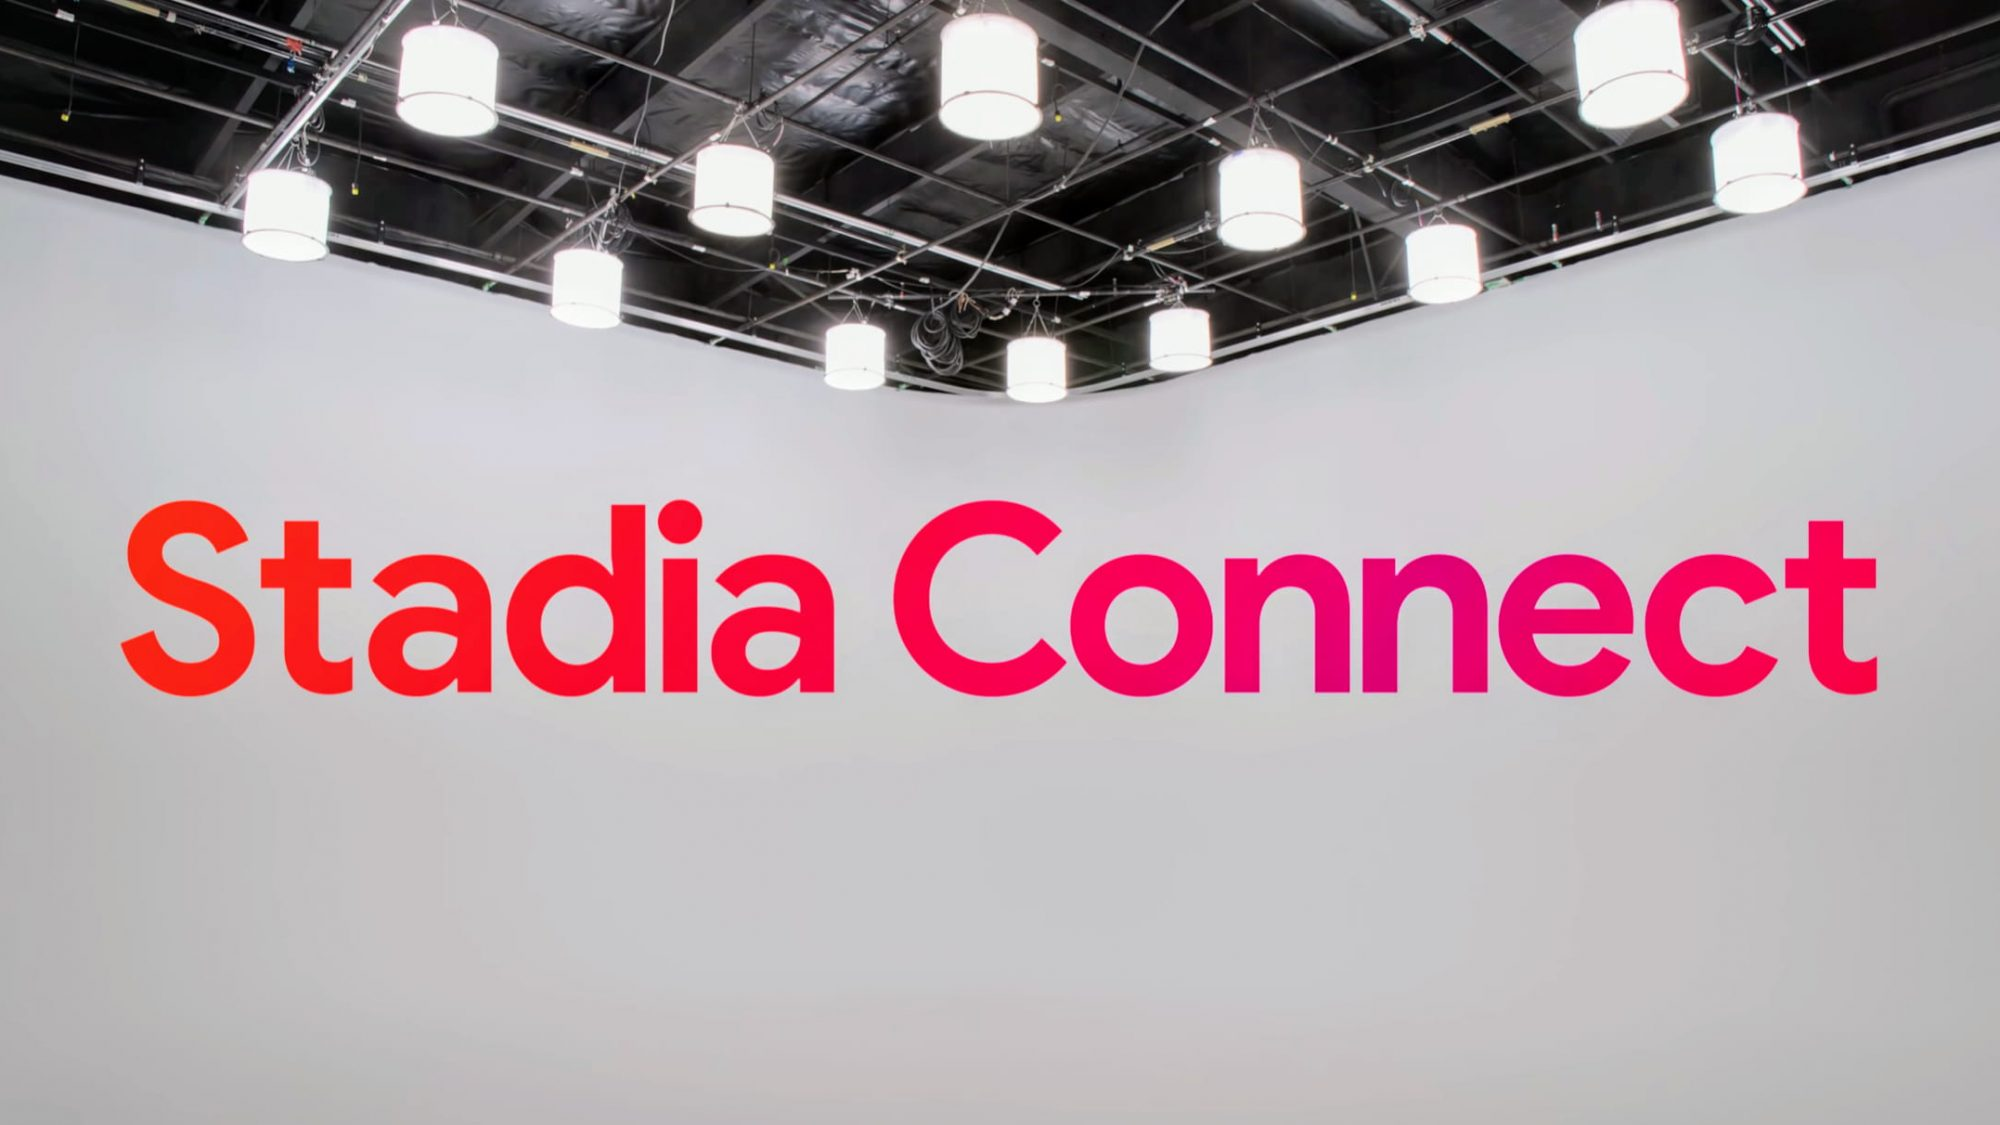 Today's Stadia Connect further reinforces developer excitement around the platform